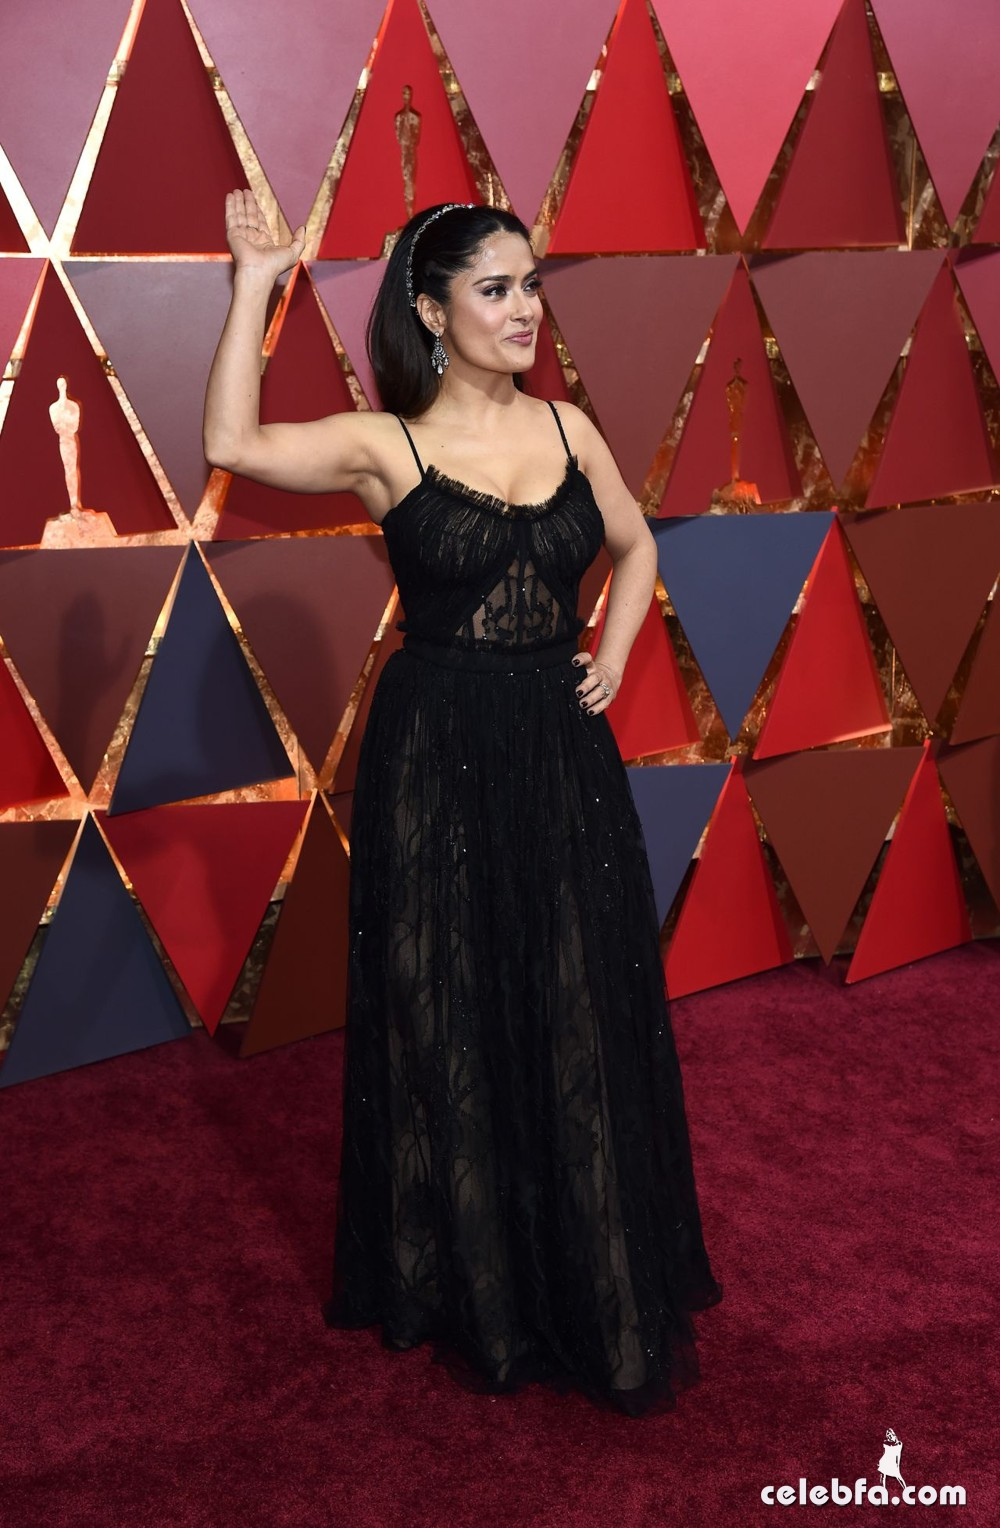 salma-hayek-oscars-2017-red-carpet-6